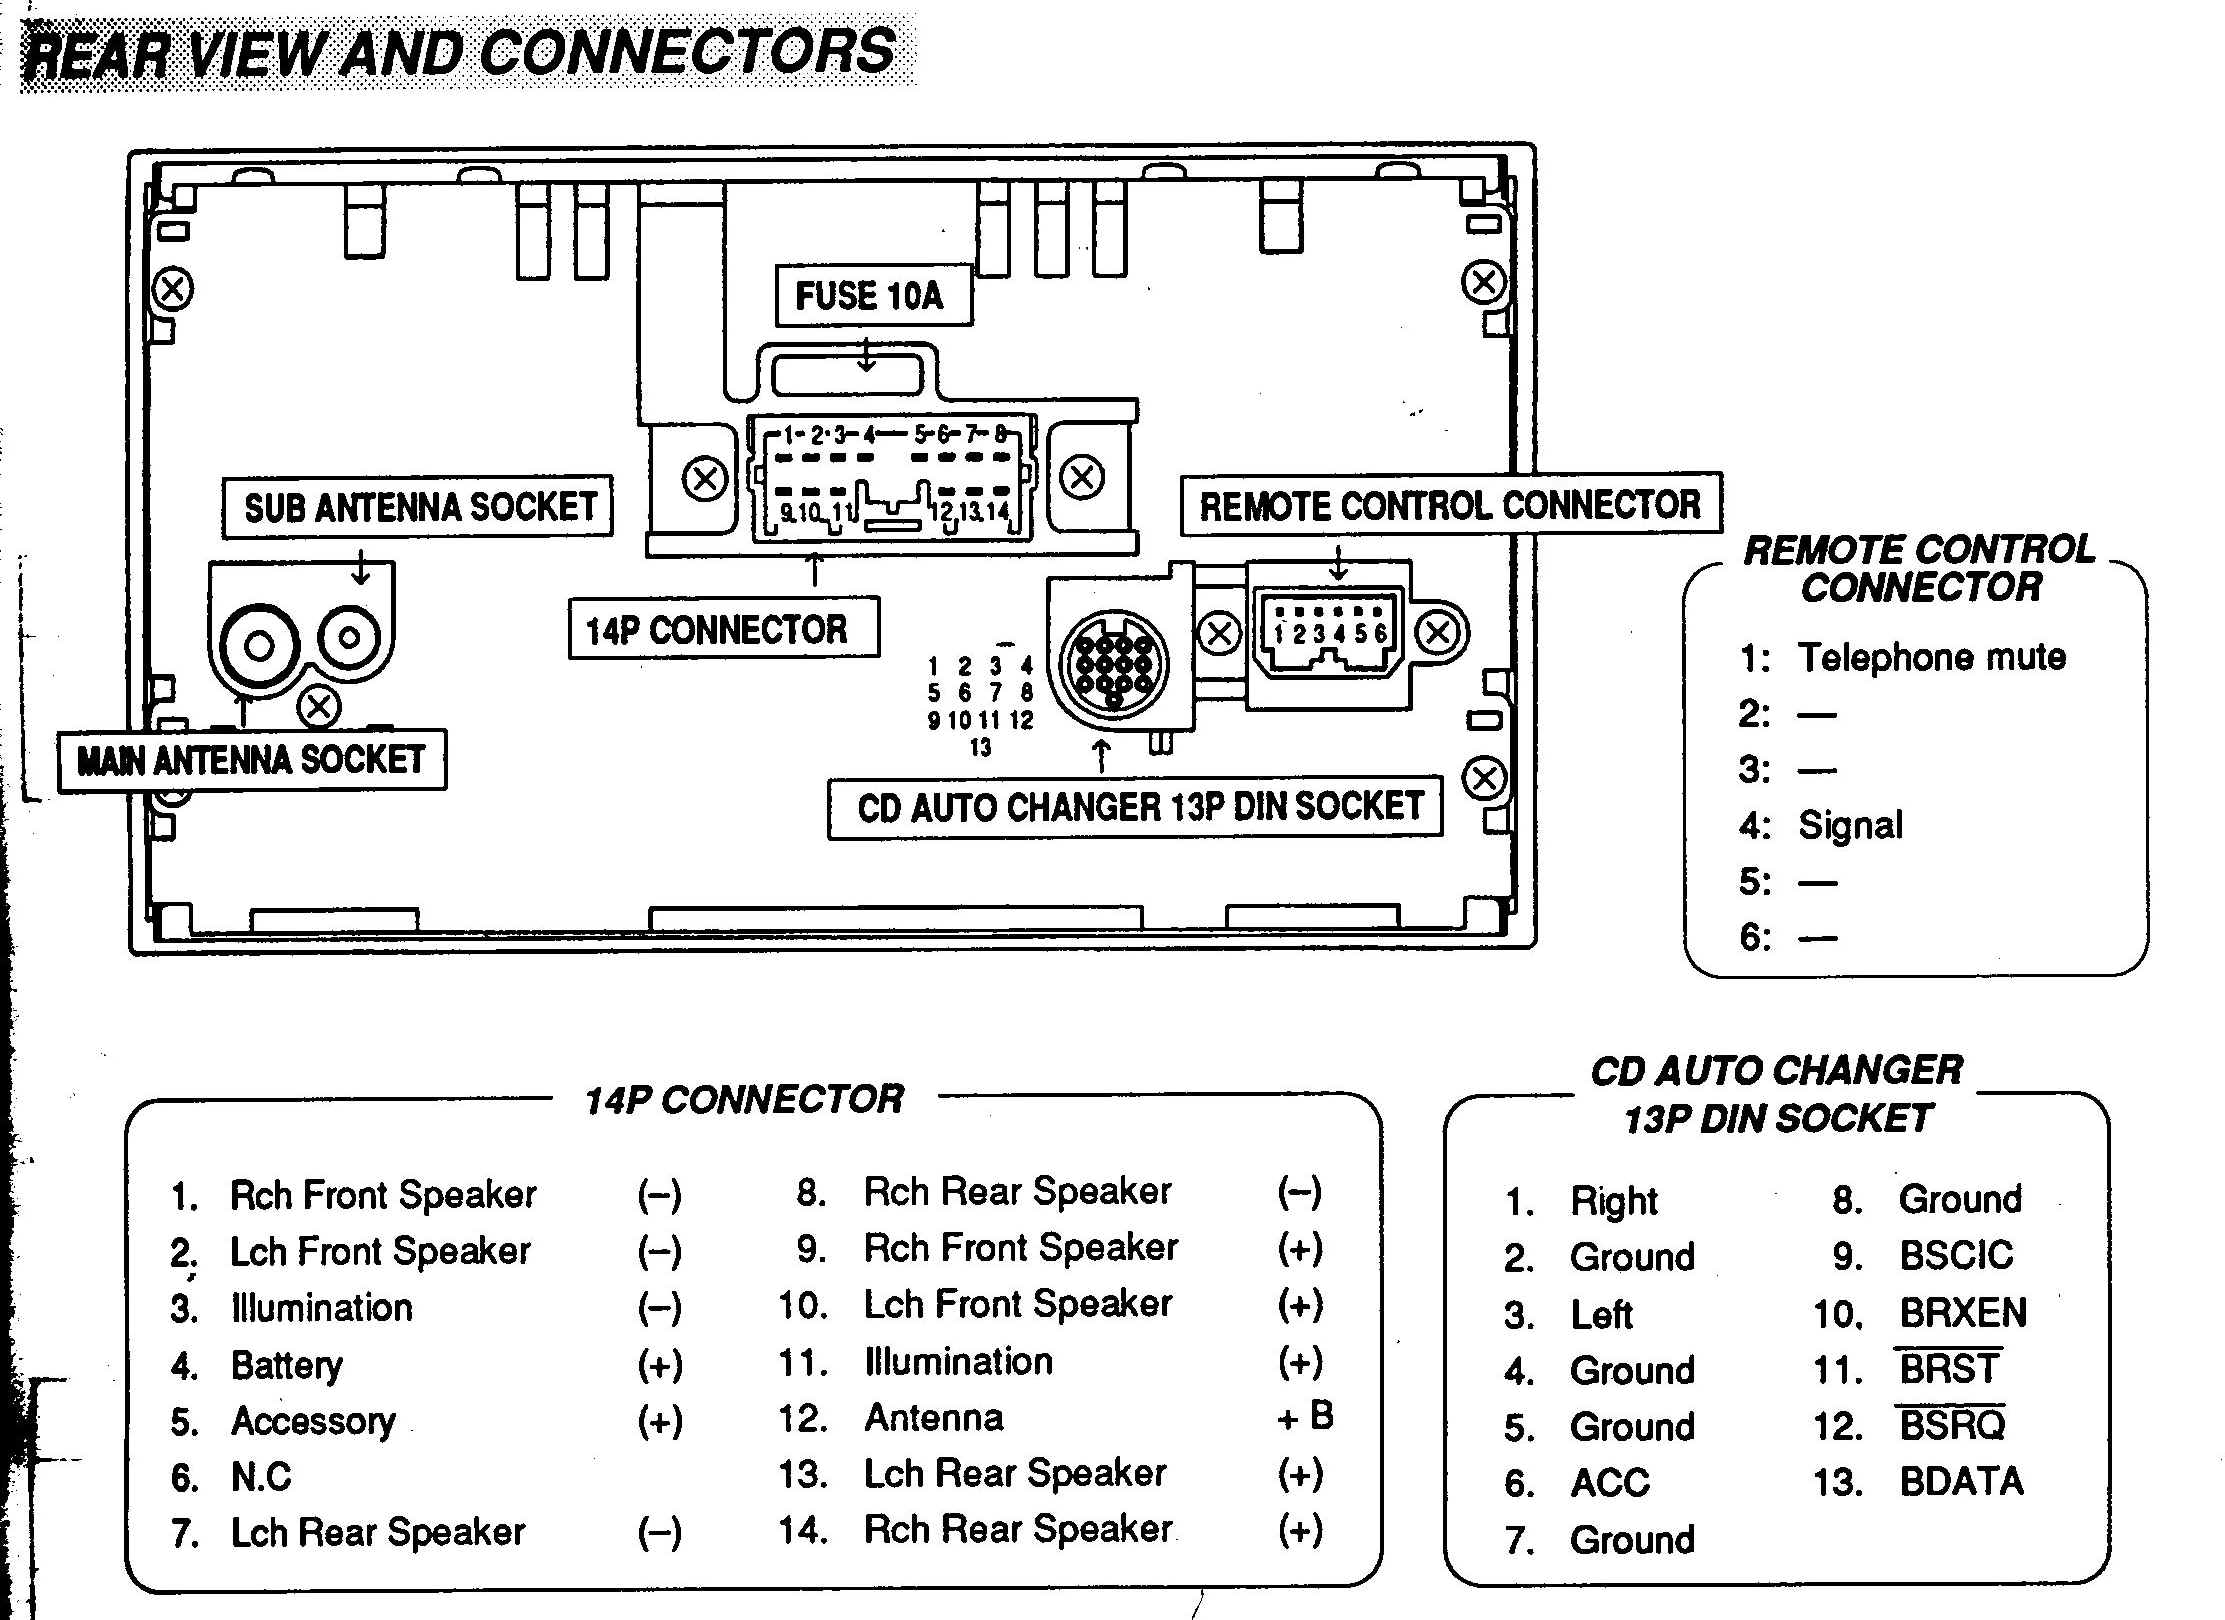 WireHarnessMit121003 wiring diagram for car stereo car stereo transformer \u2022 free wiring car stereo speaker wiring at creativeand.co